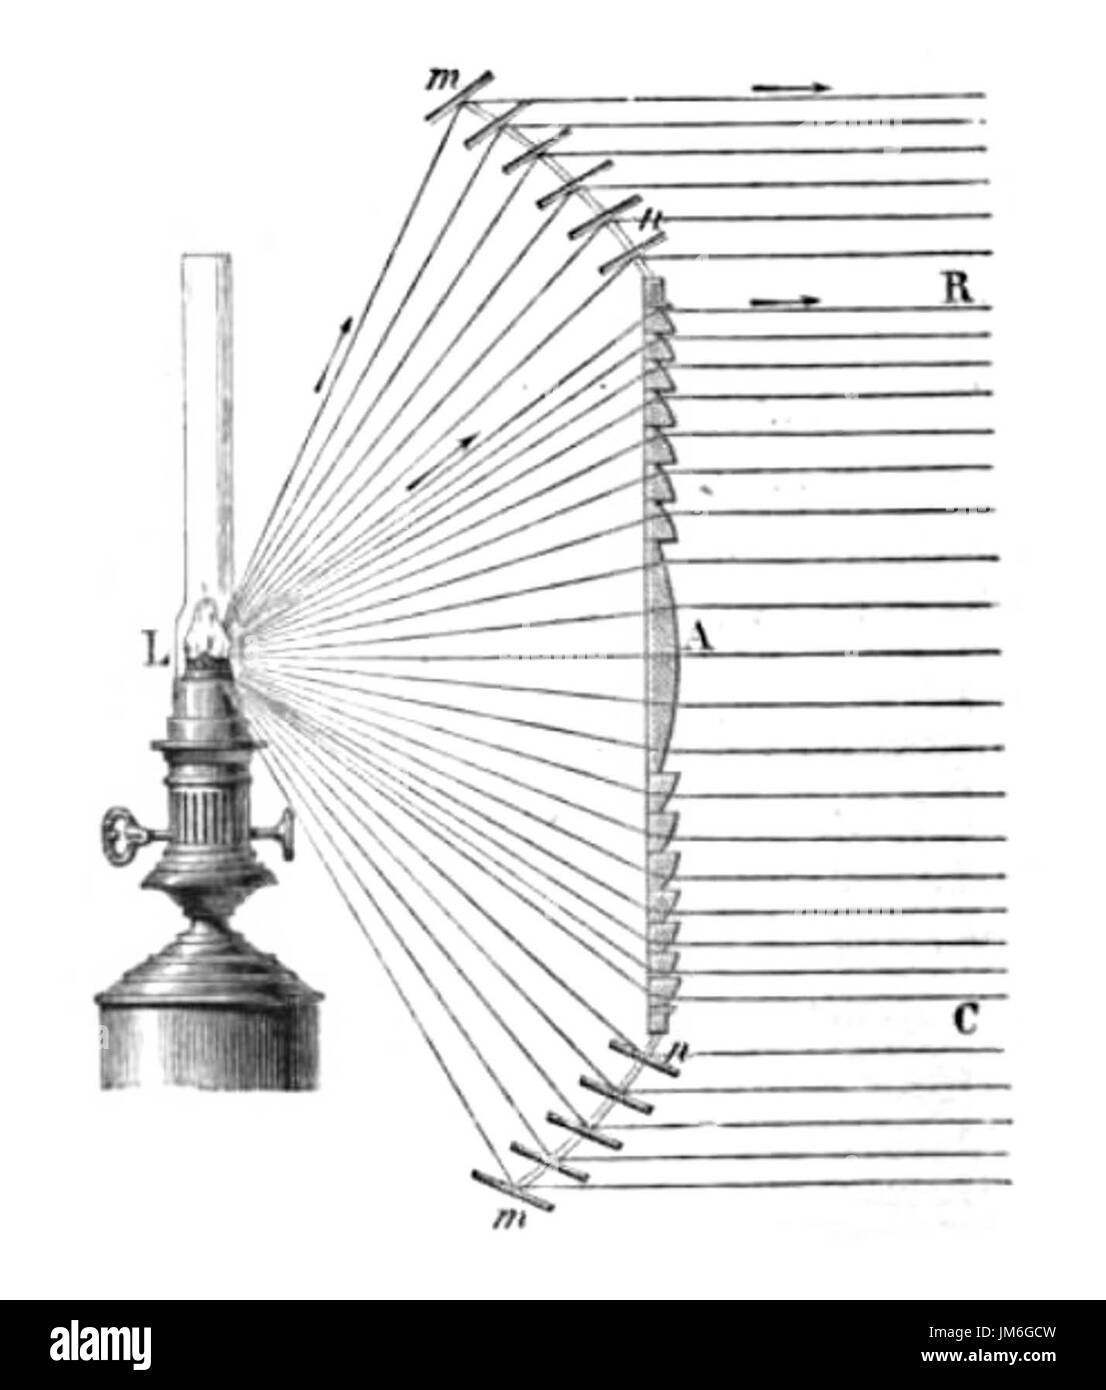 Fresnel cut out stock images pictures alamy diagram depicting how a spherical fresnel lens collimates light 1872 stock image pooptronica Gallery